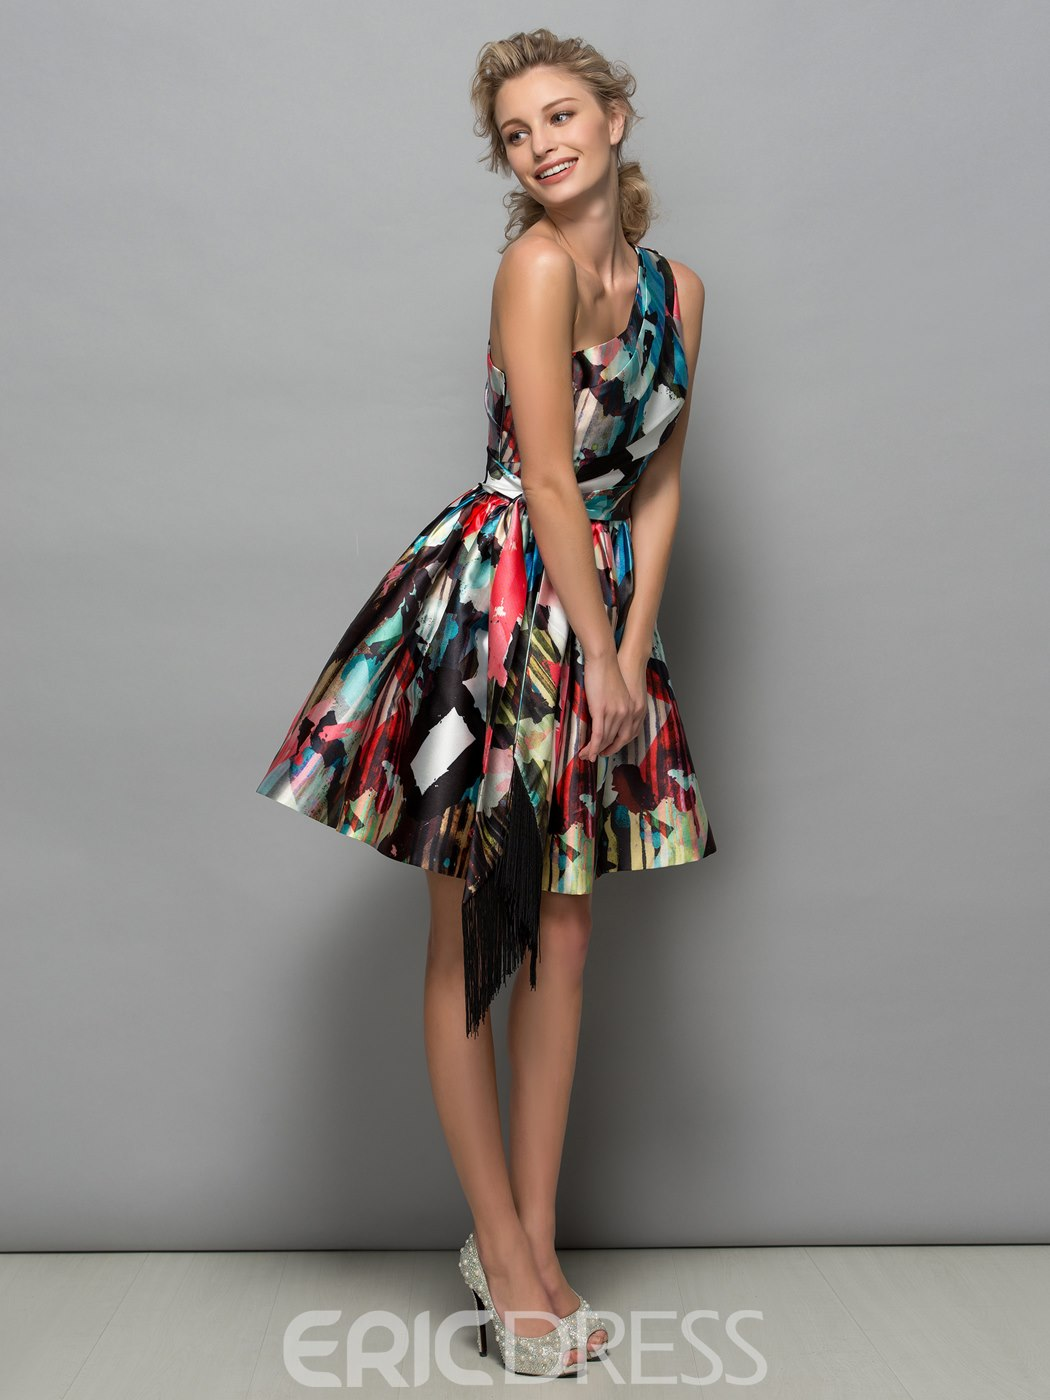 Ericdress One Shoulder Pleats Print Short Cocktail Dress